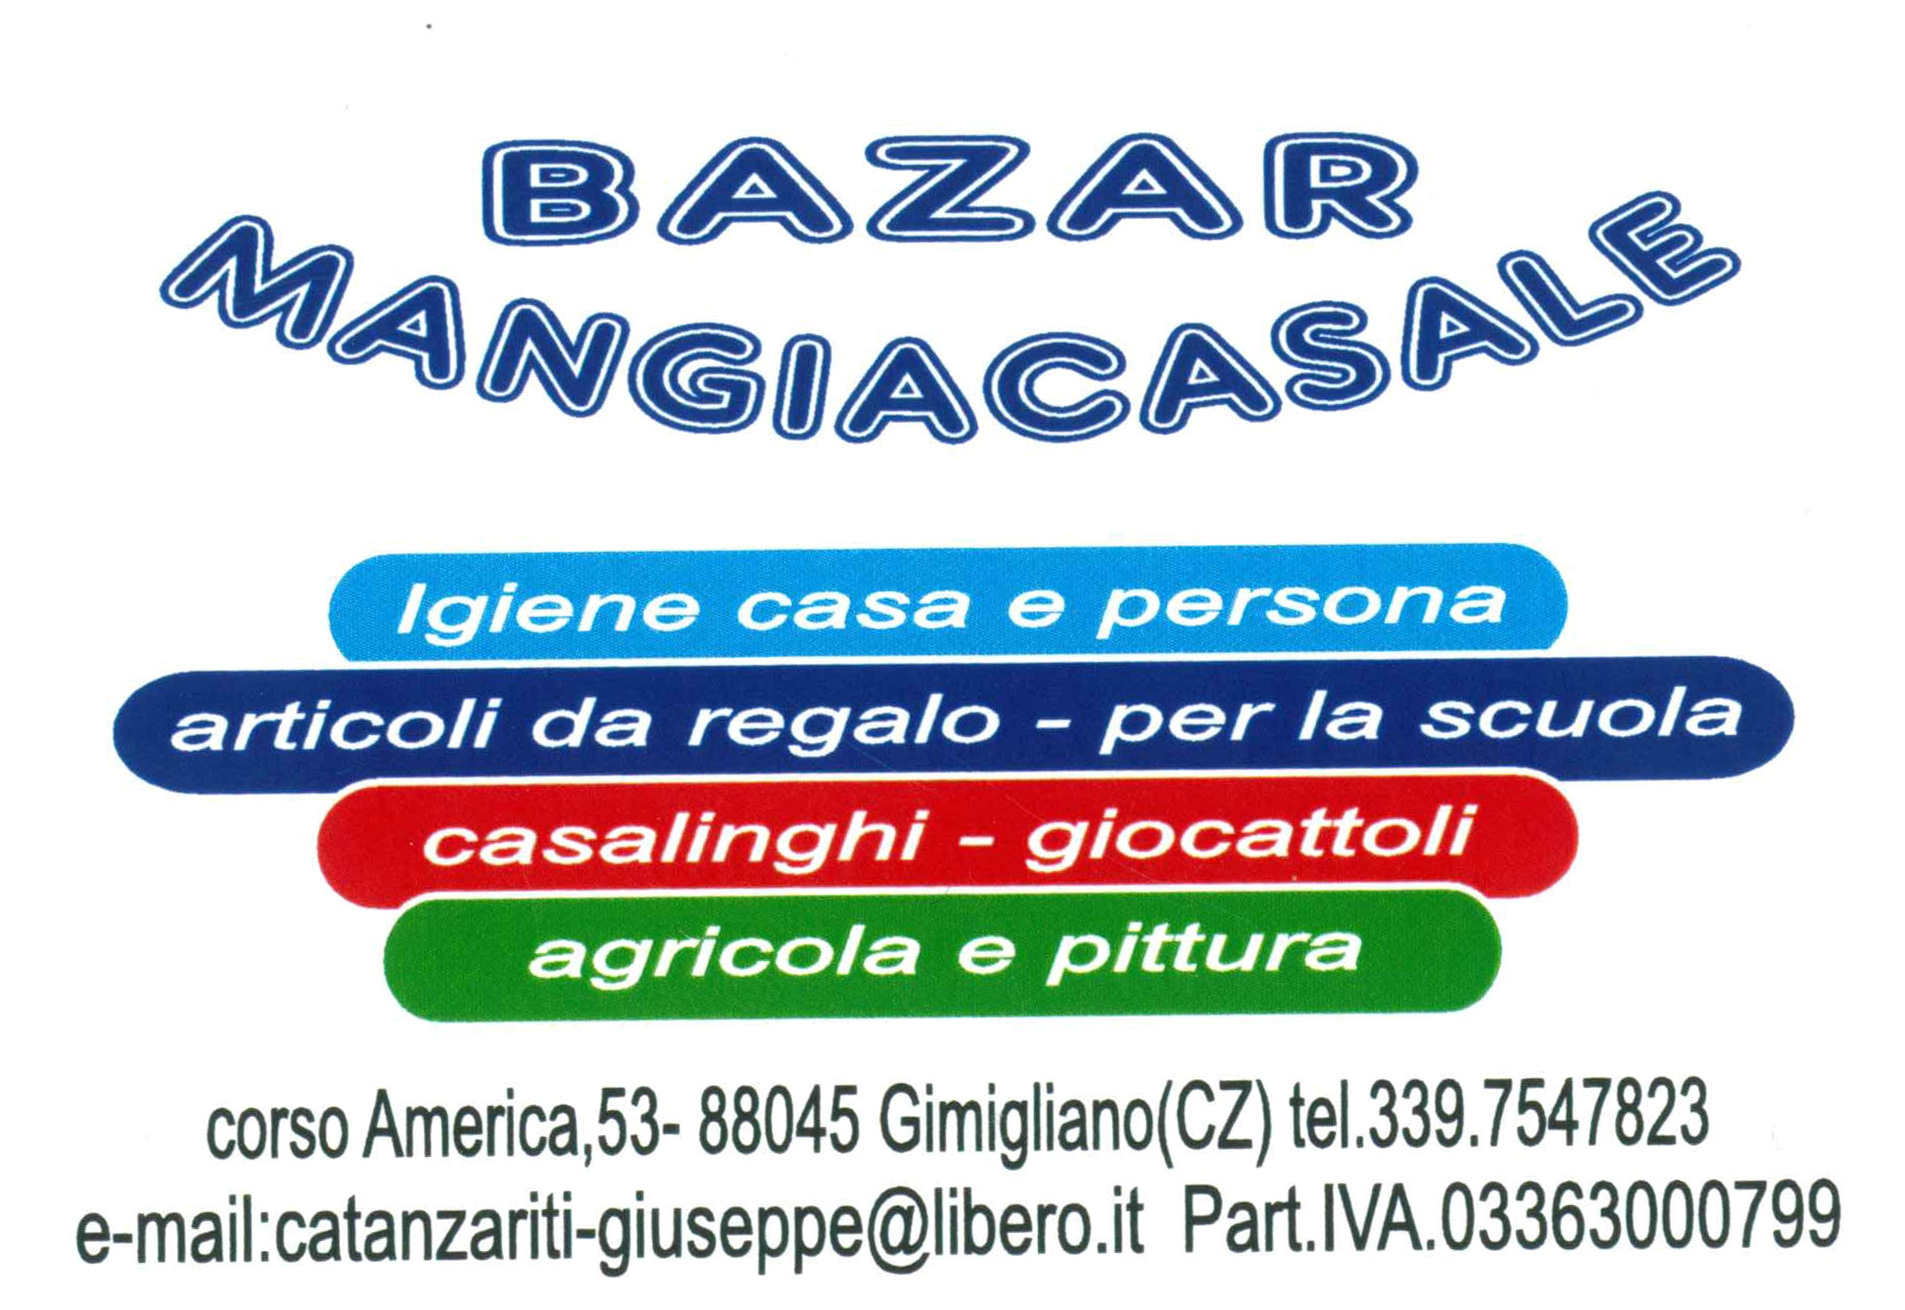 http://usdgimigliano.it/wp-content/uploads/2016/11/bazar.jpg